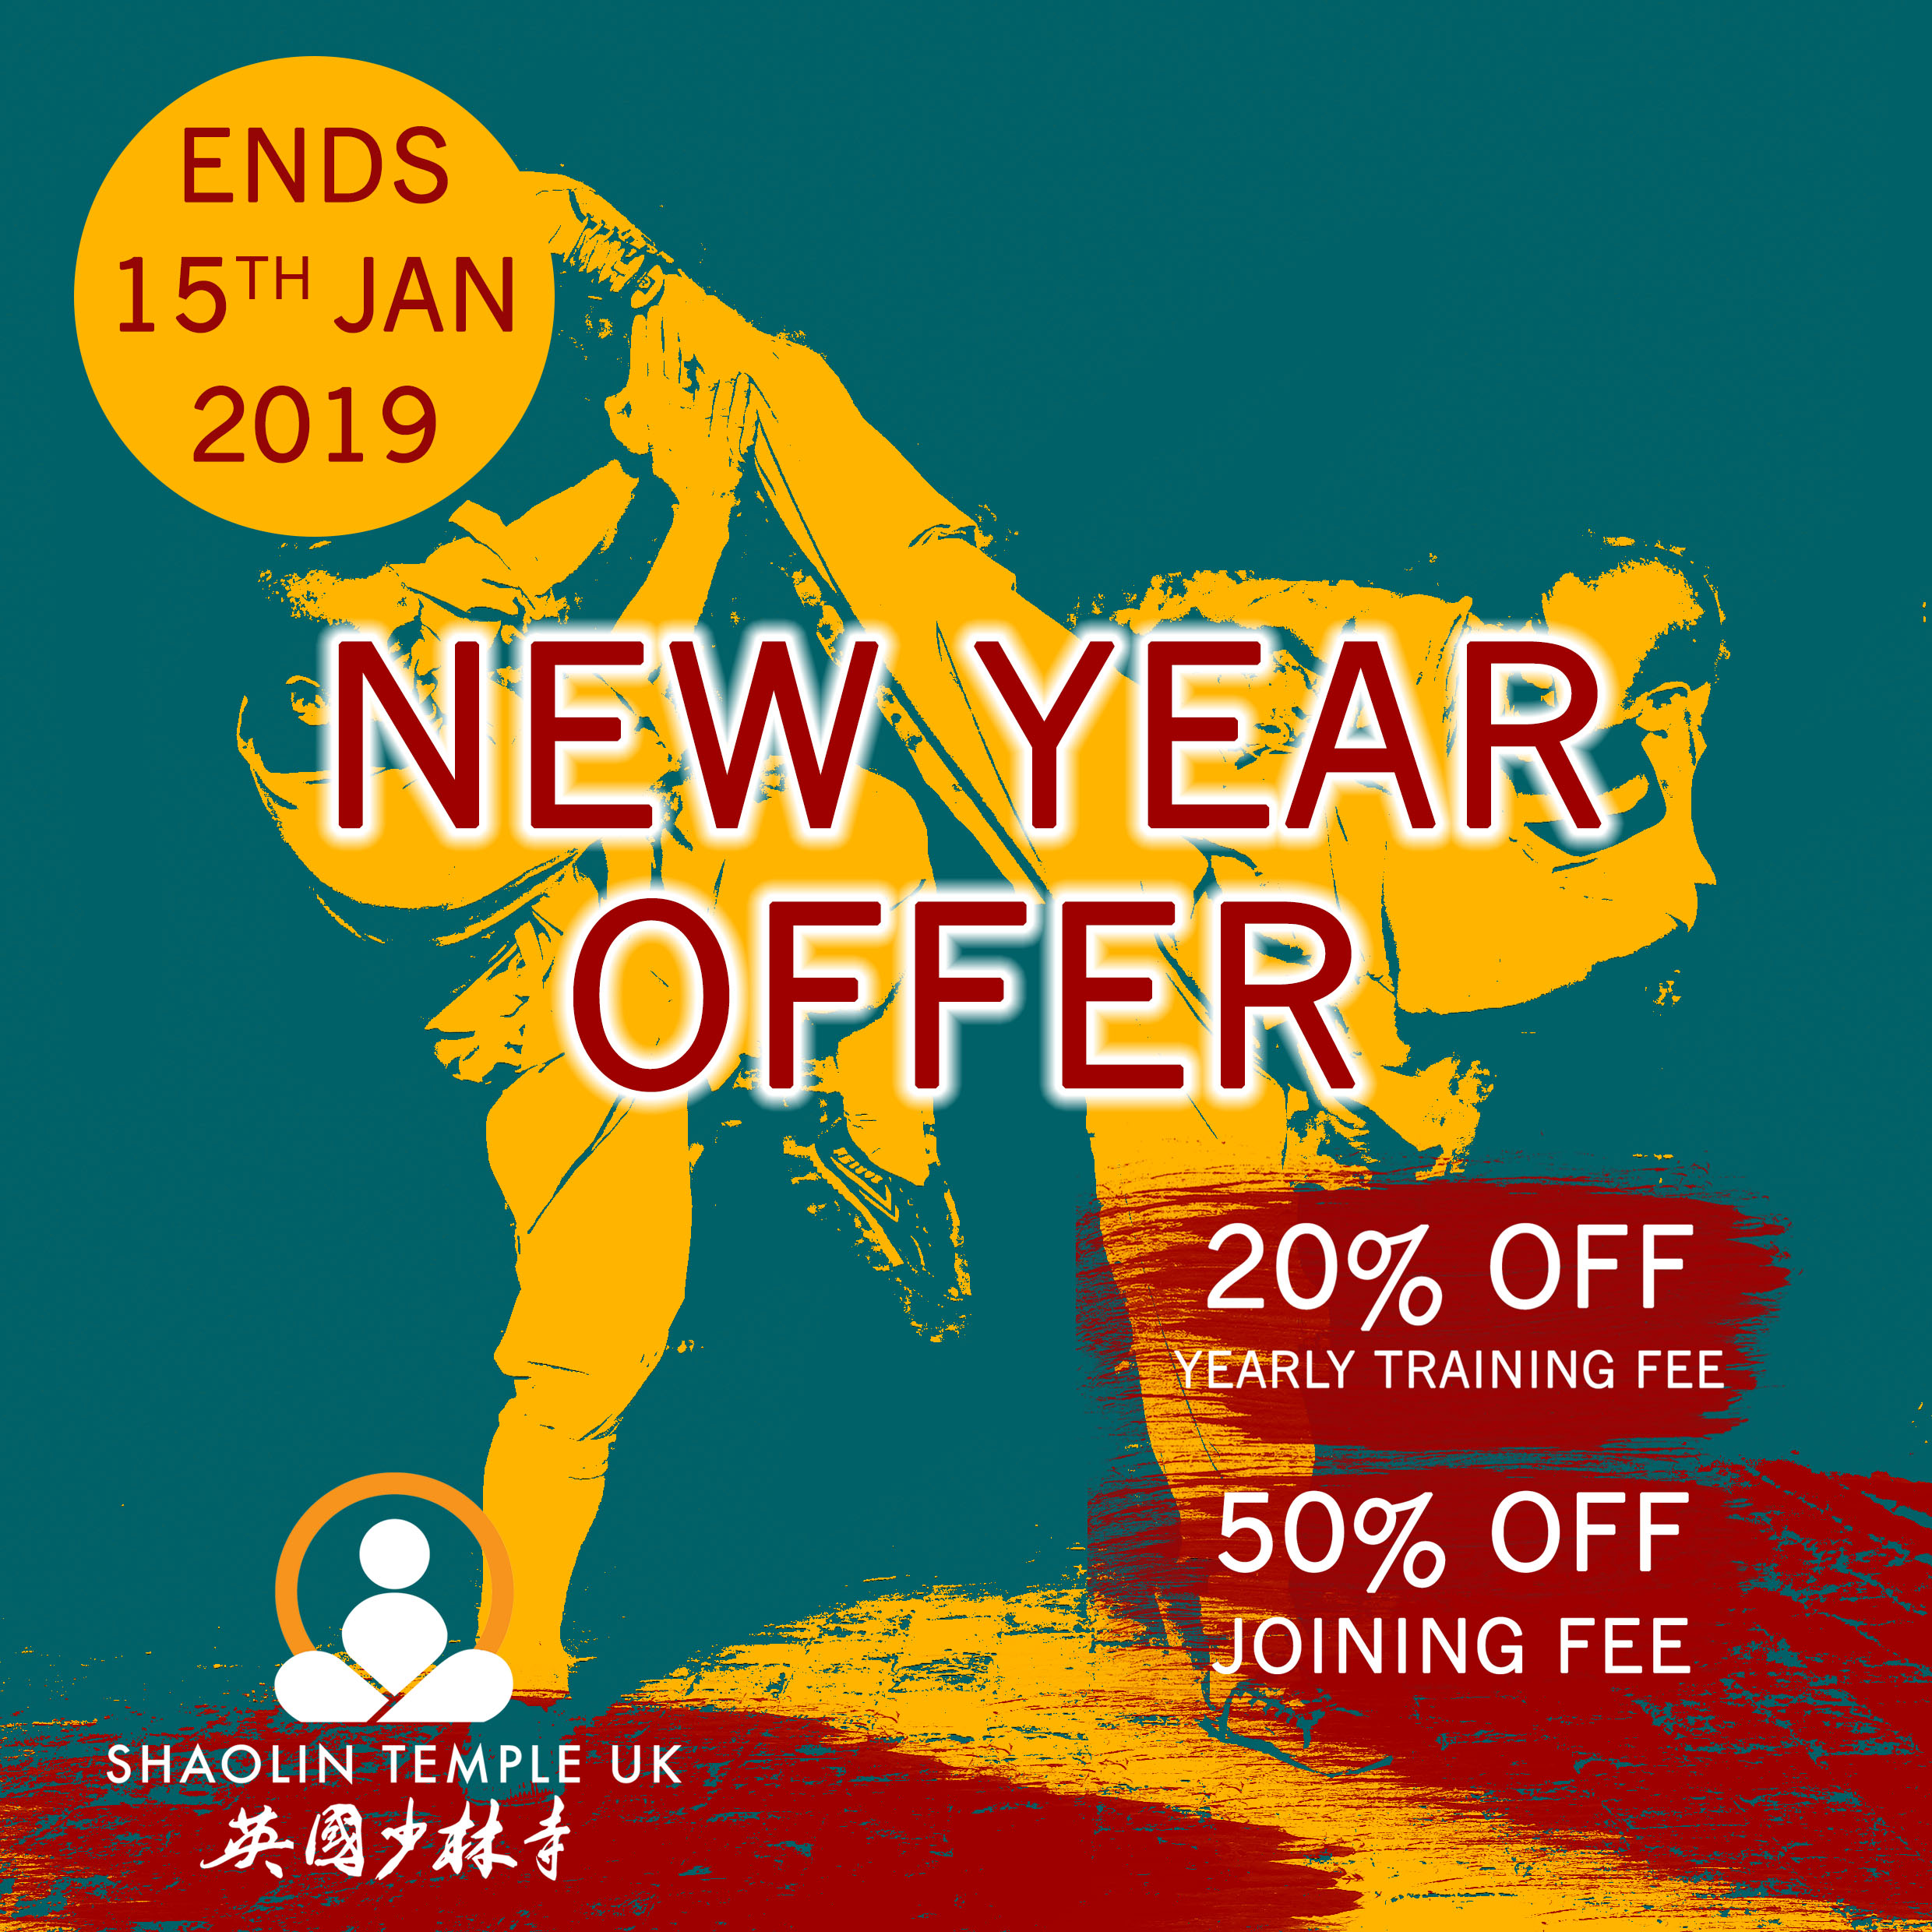 Until Jan.15 - The New Year offer is now available to new and existing members (adults).Joining fee is reduced by 50%, at £40 (save £40).Annual training fee is reduced by 20%, at £624 (save £156).